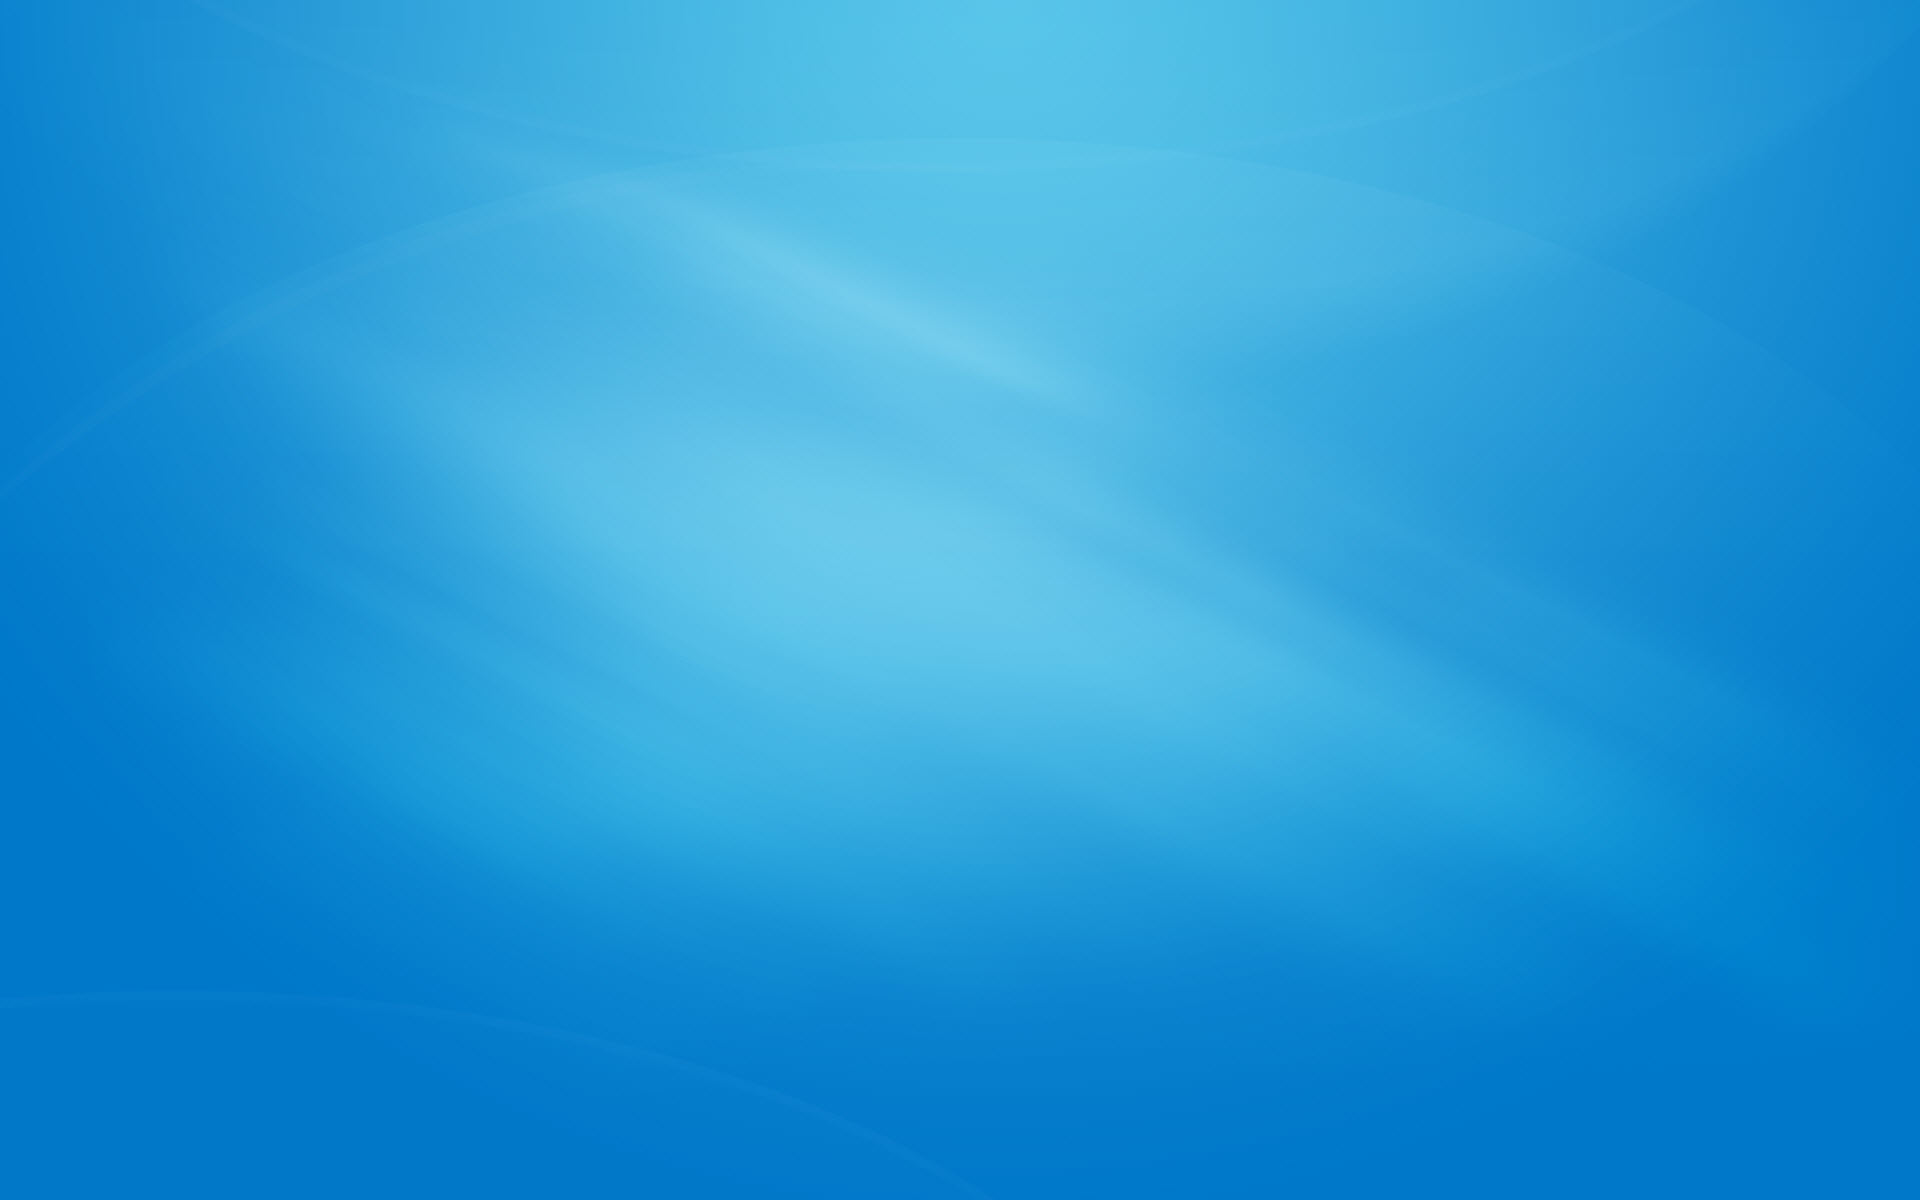 desktop-background-blue-hd-images-3